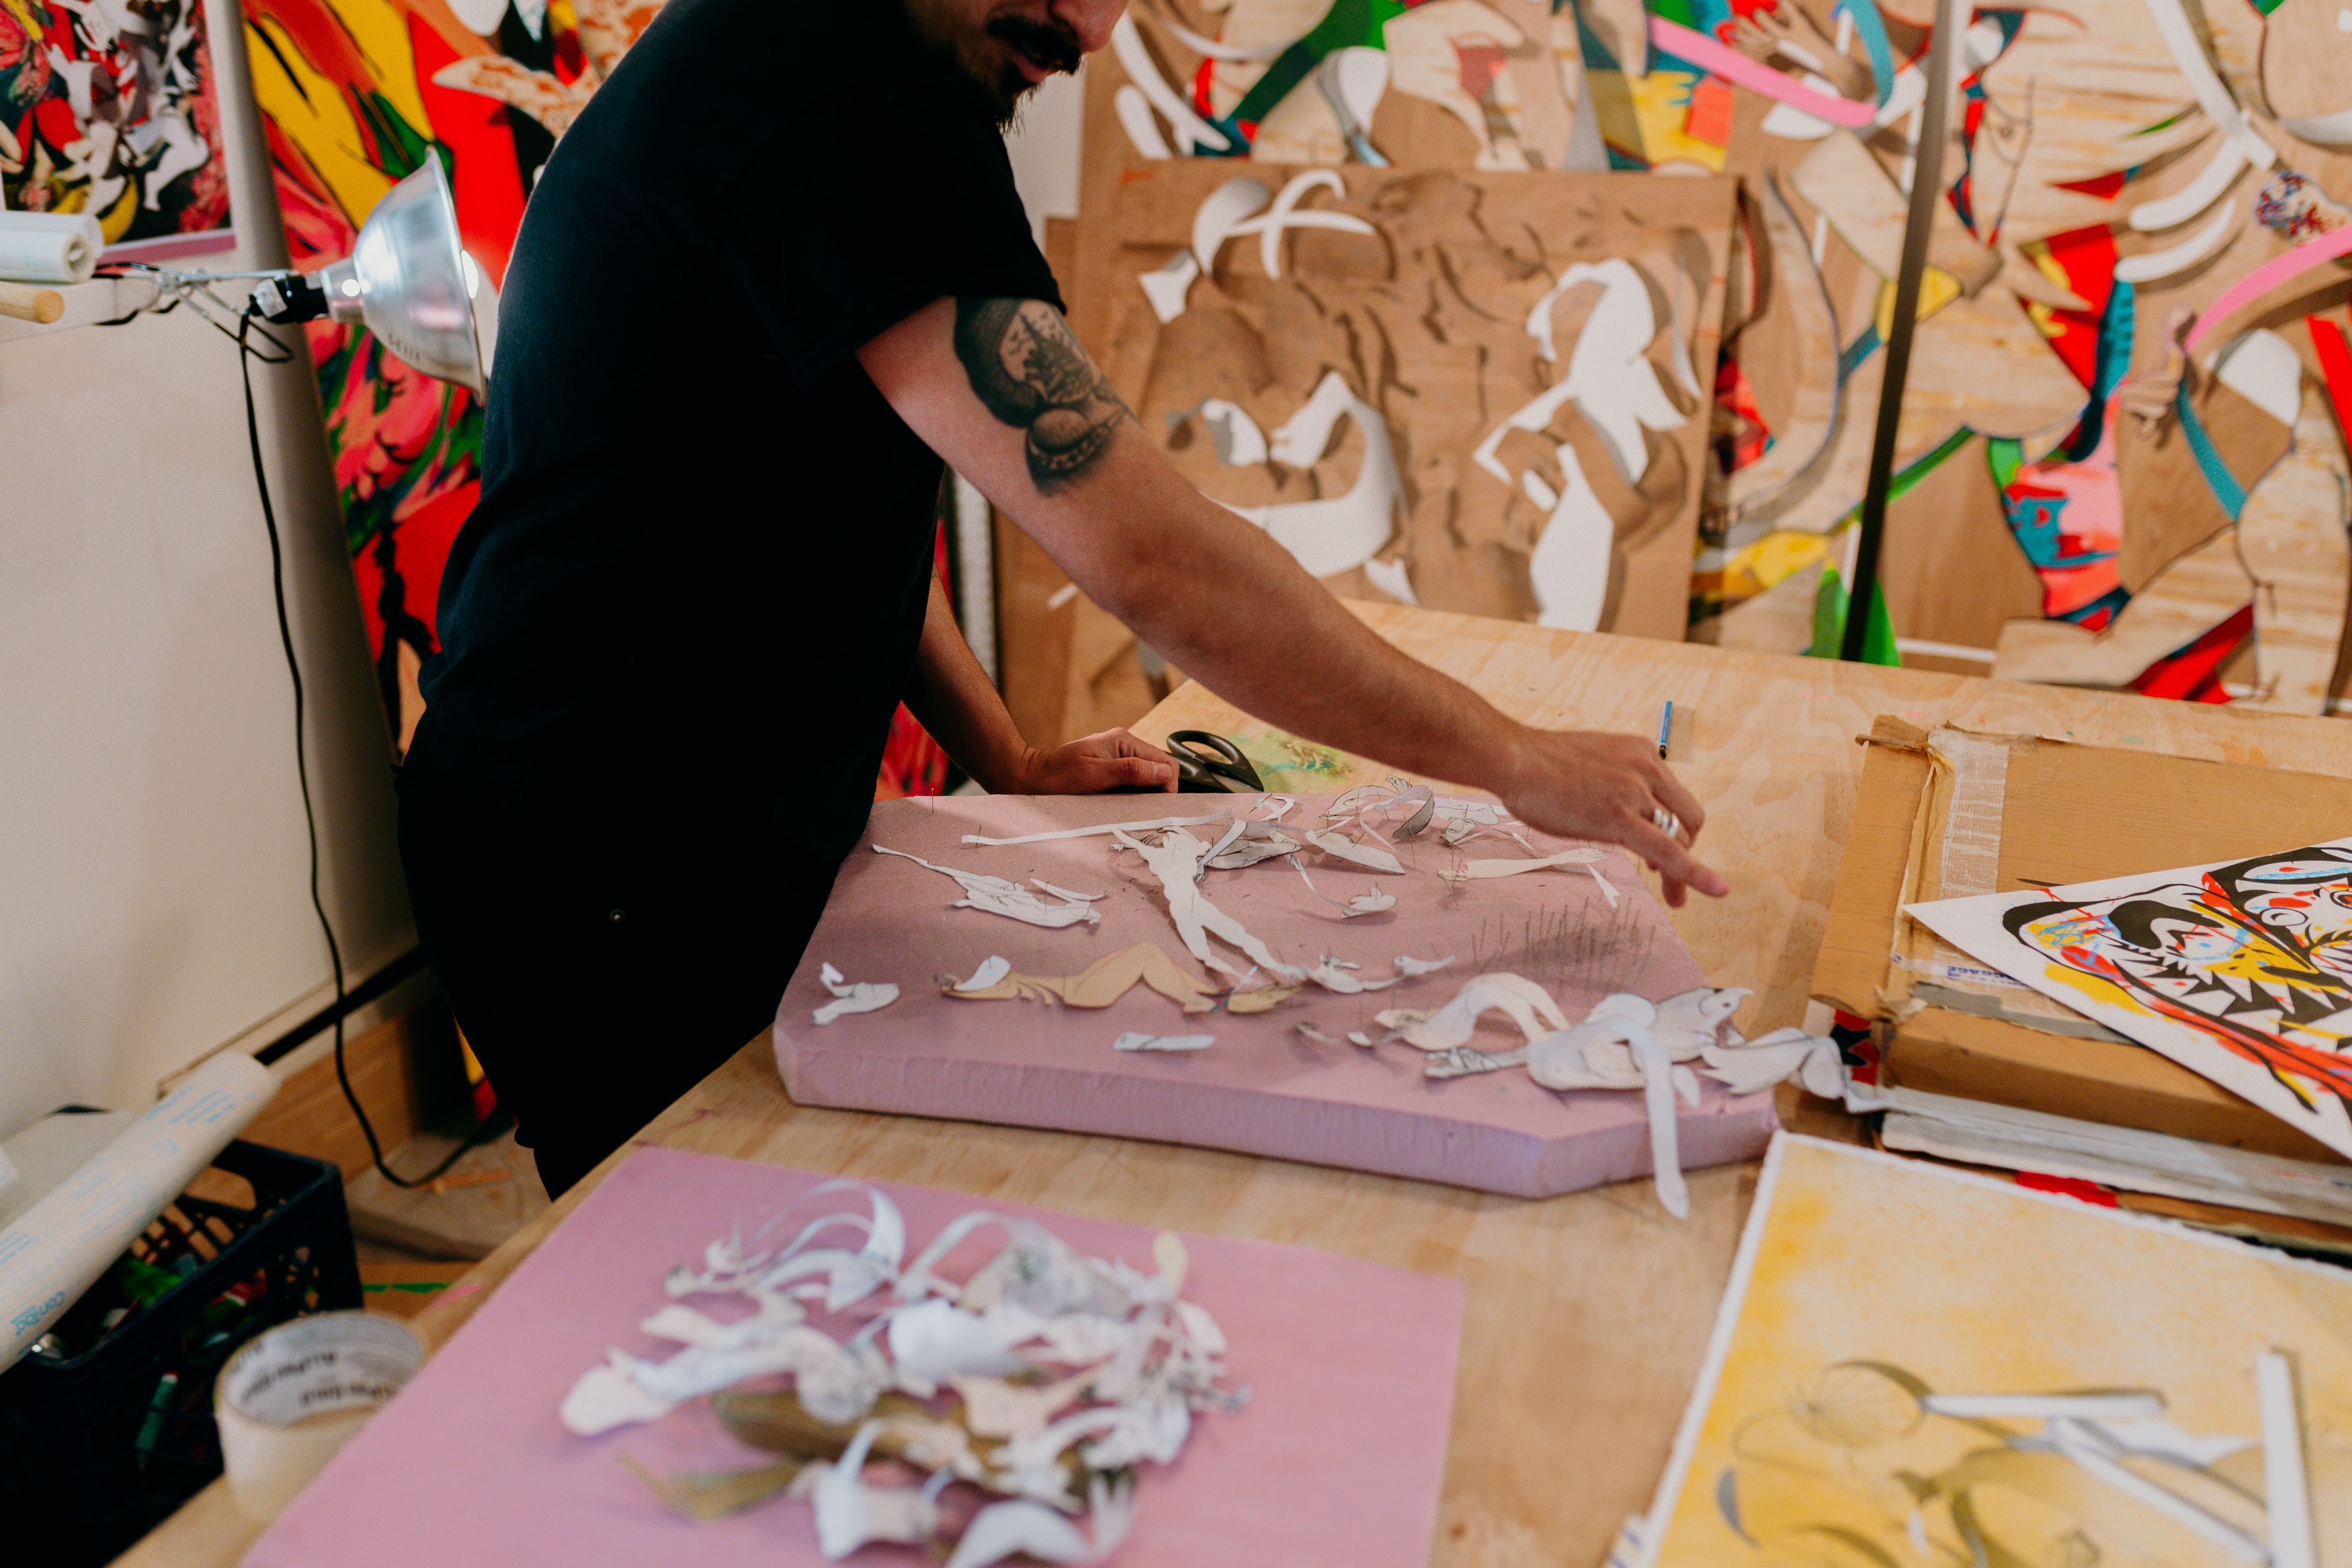 Candid shot of a man working in a studio surrounded by wood panel artworks and styrofoam .